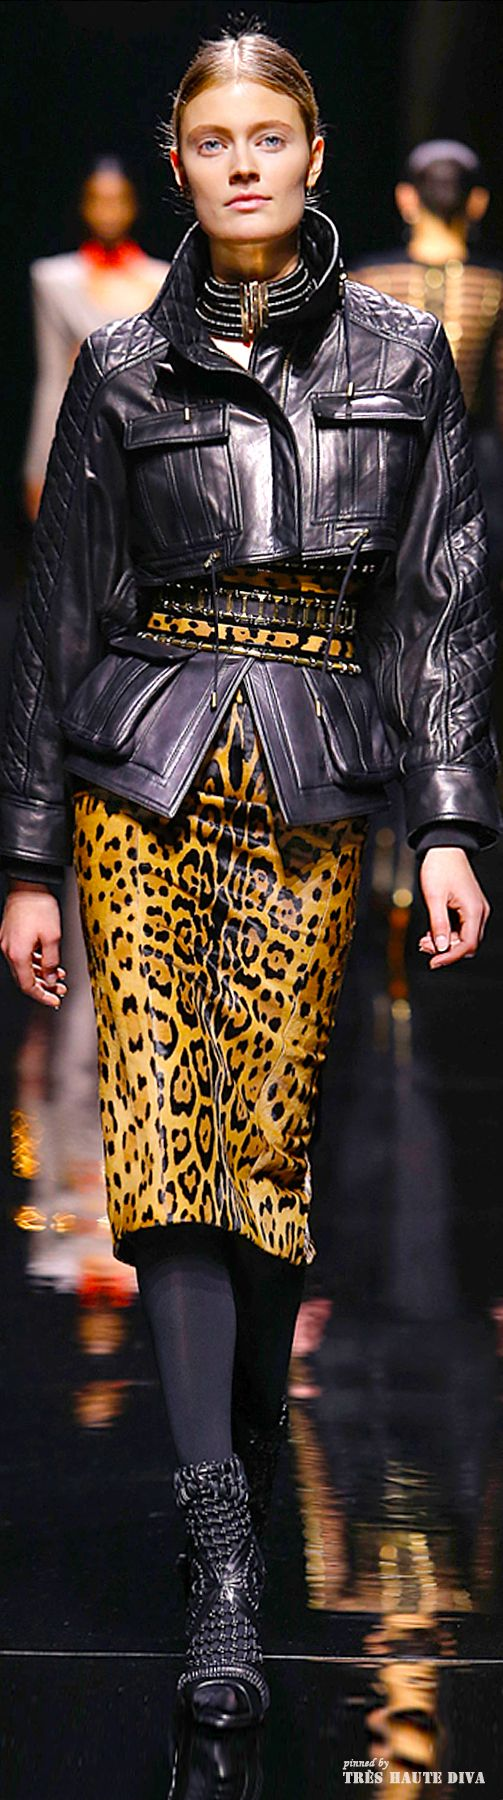 27 best Fall/Winter 2014/2015 Fashion Trends images on ...